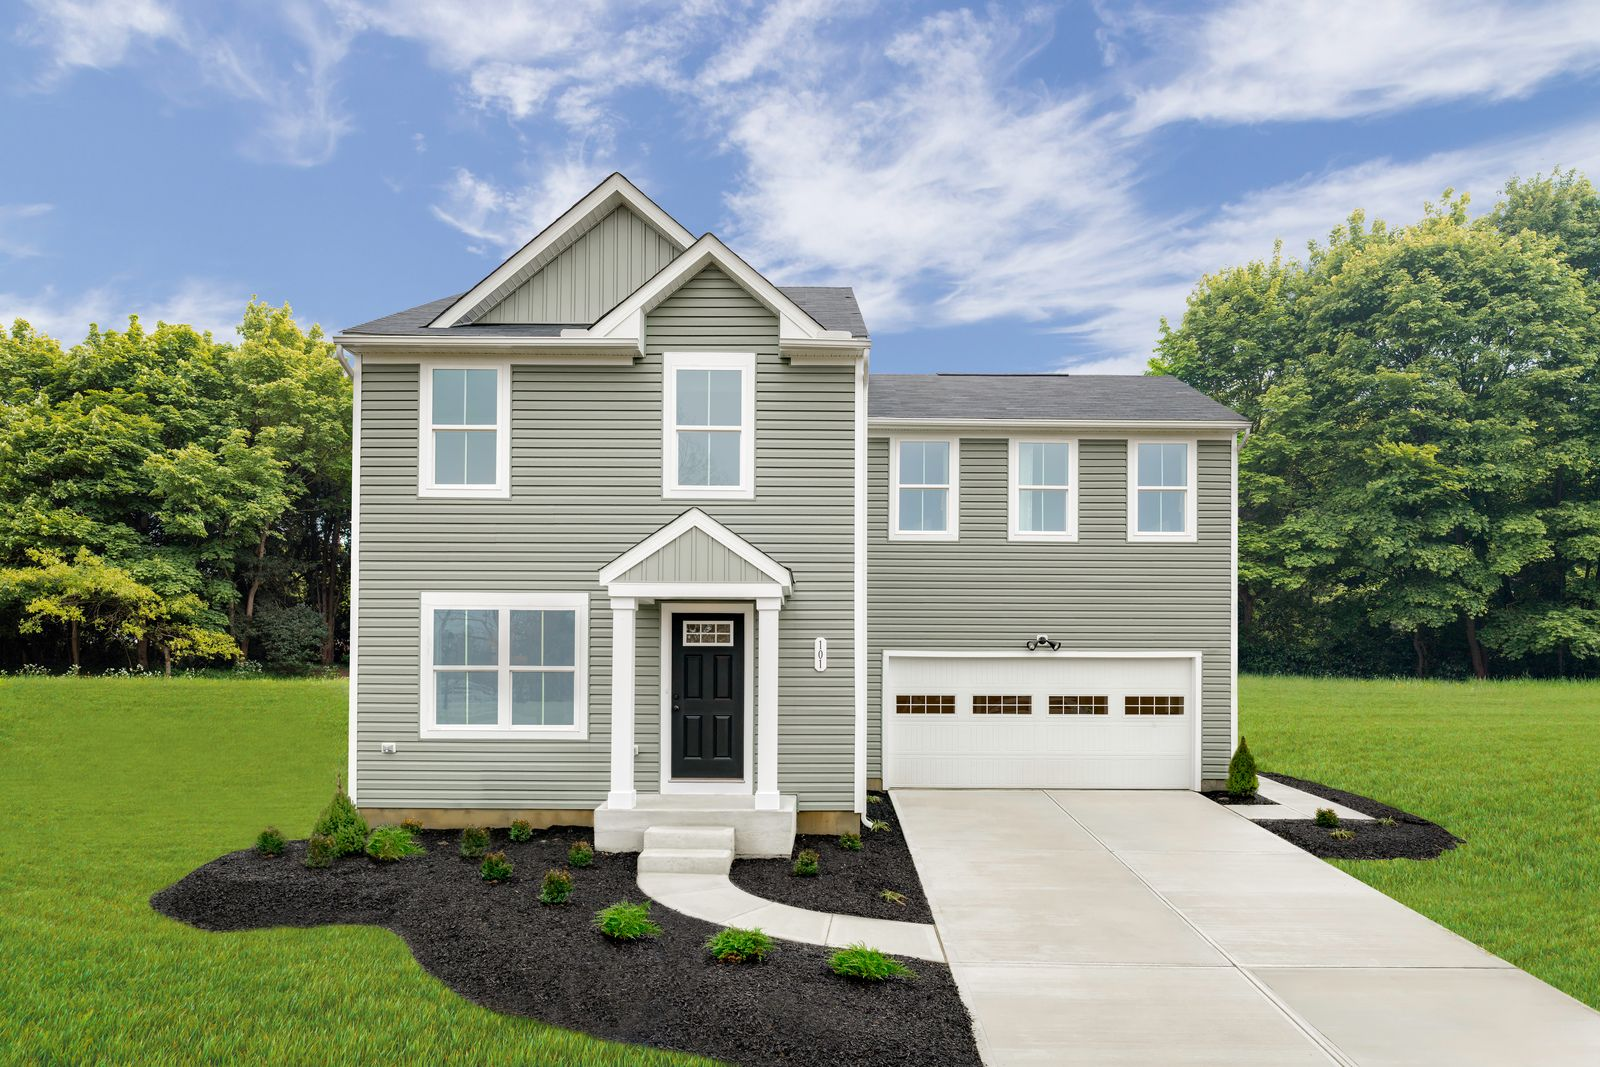 Welcome Home to Regatta at Light's Hill:New homes at a great value with 2-car garages, slab and basement options, and included appliances only 20 mi from Downtown Cinci.Schedule your visit today!